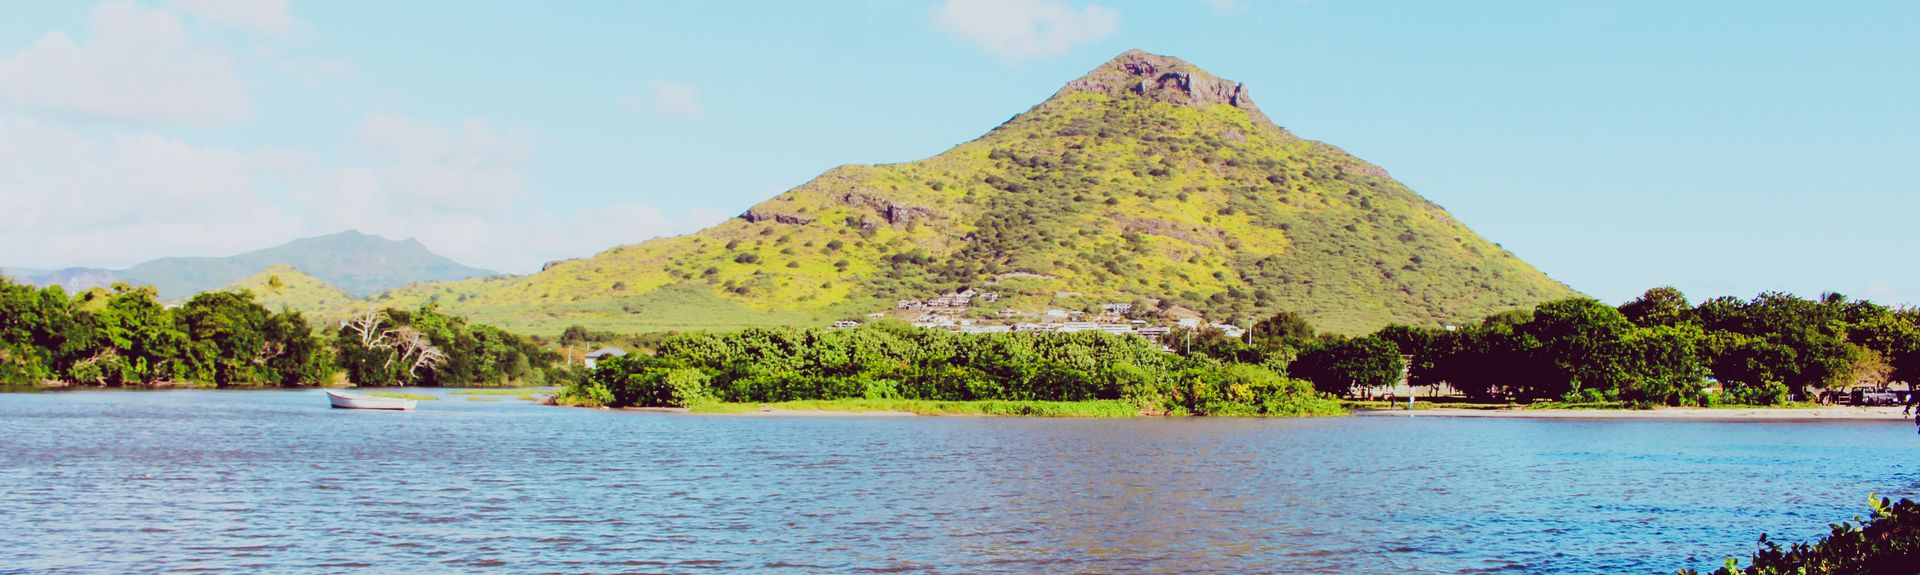 Beau Bassin-Rose Hill, District Plaines Wilhems, Mauritius